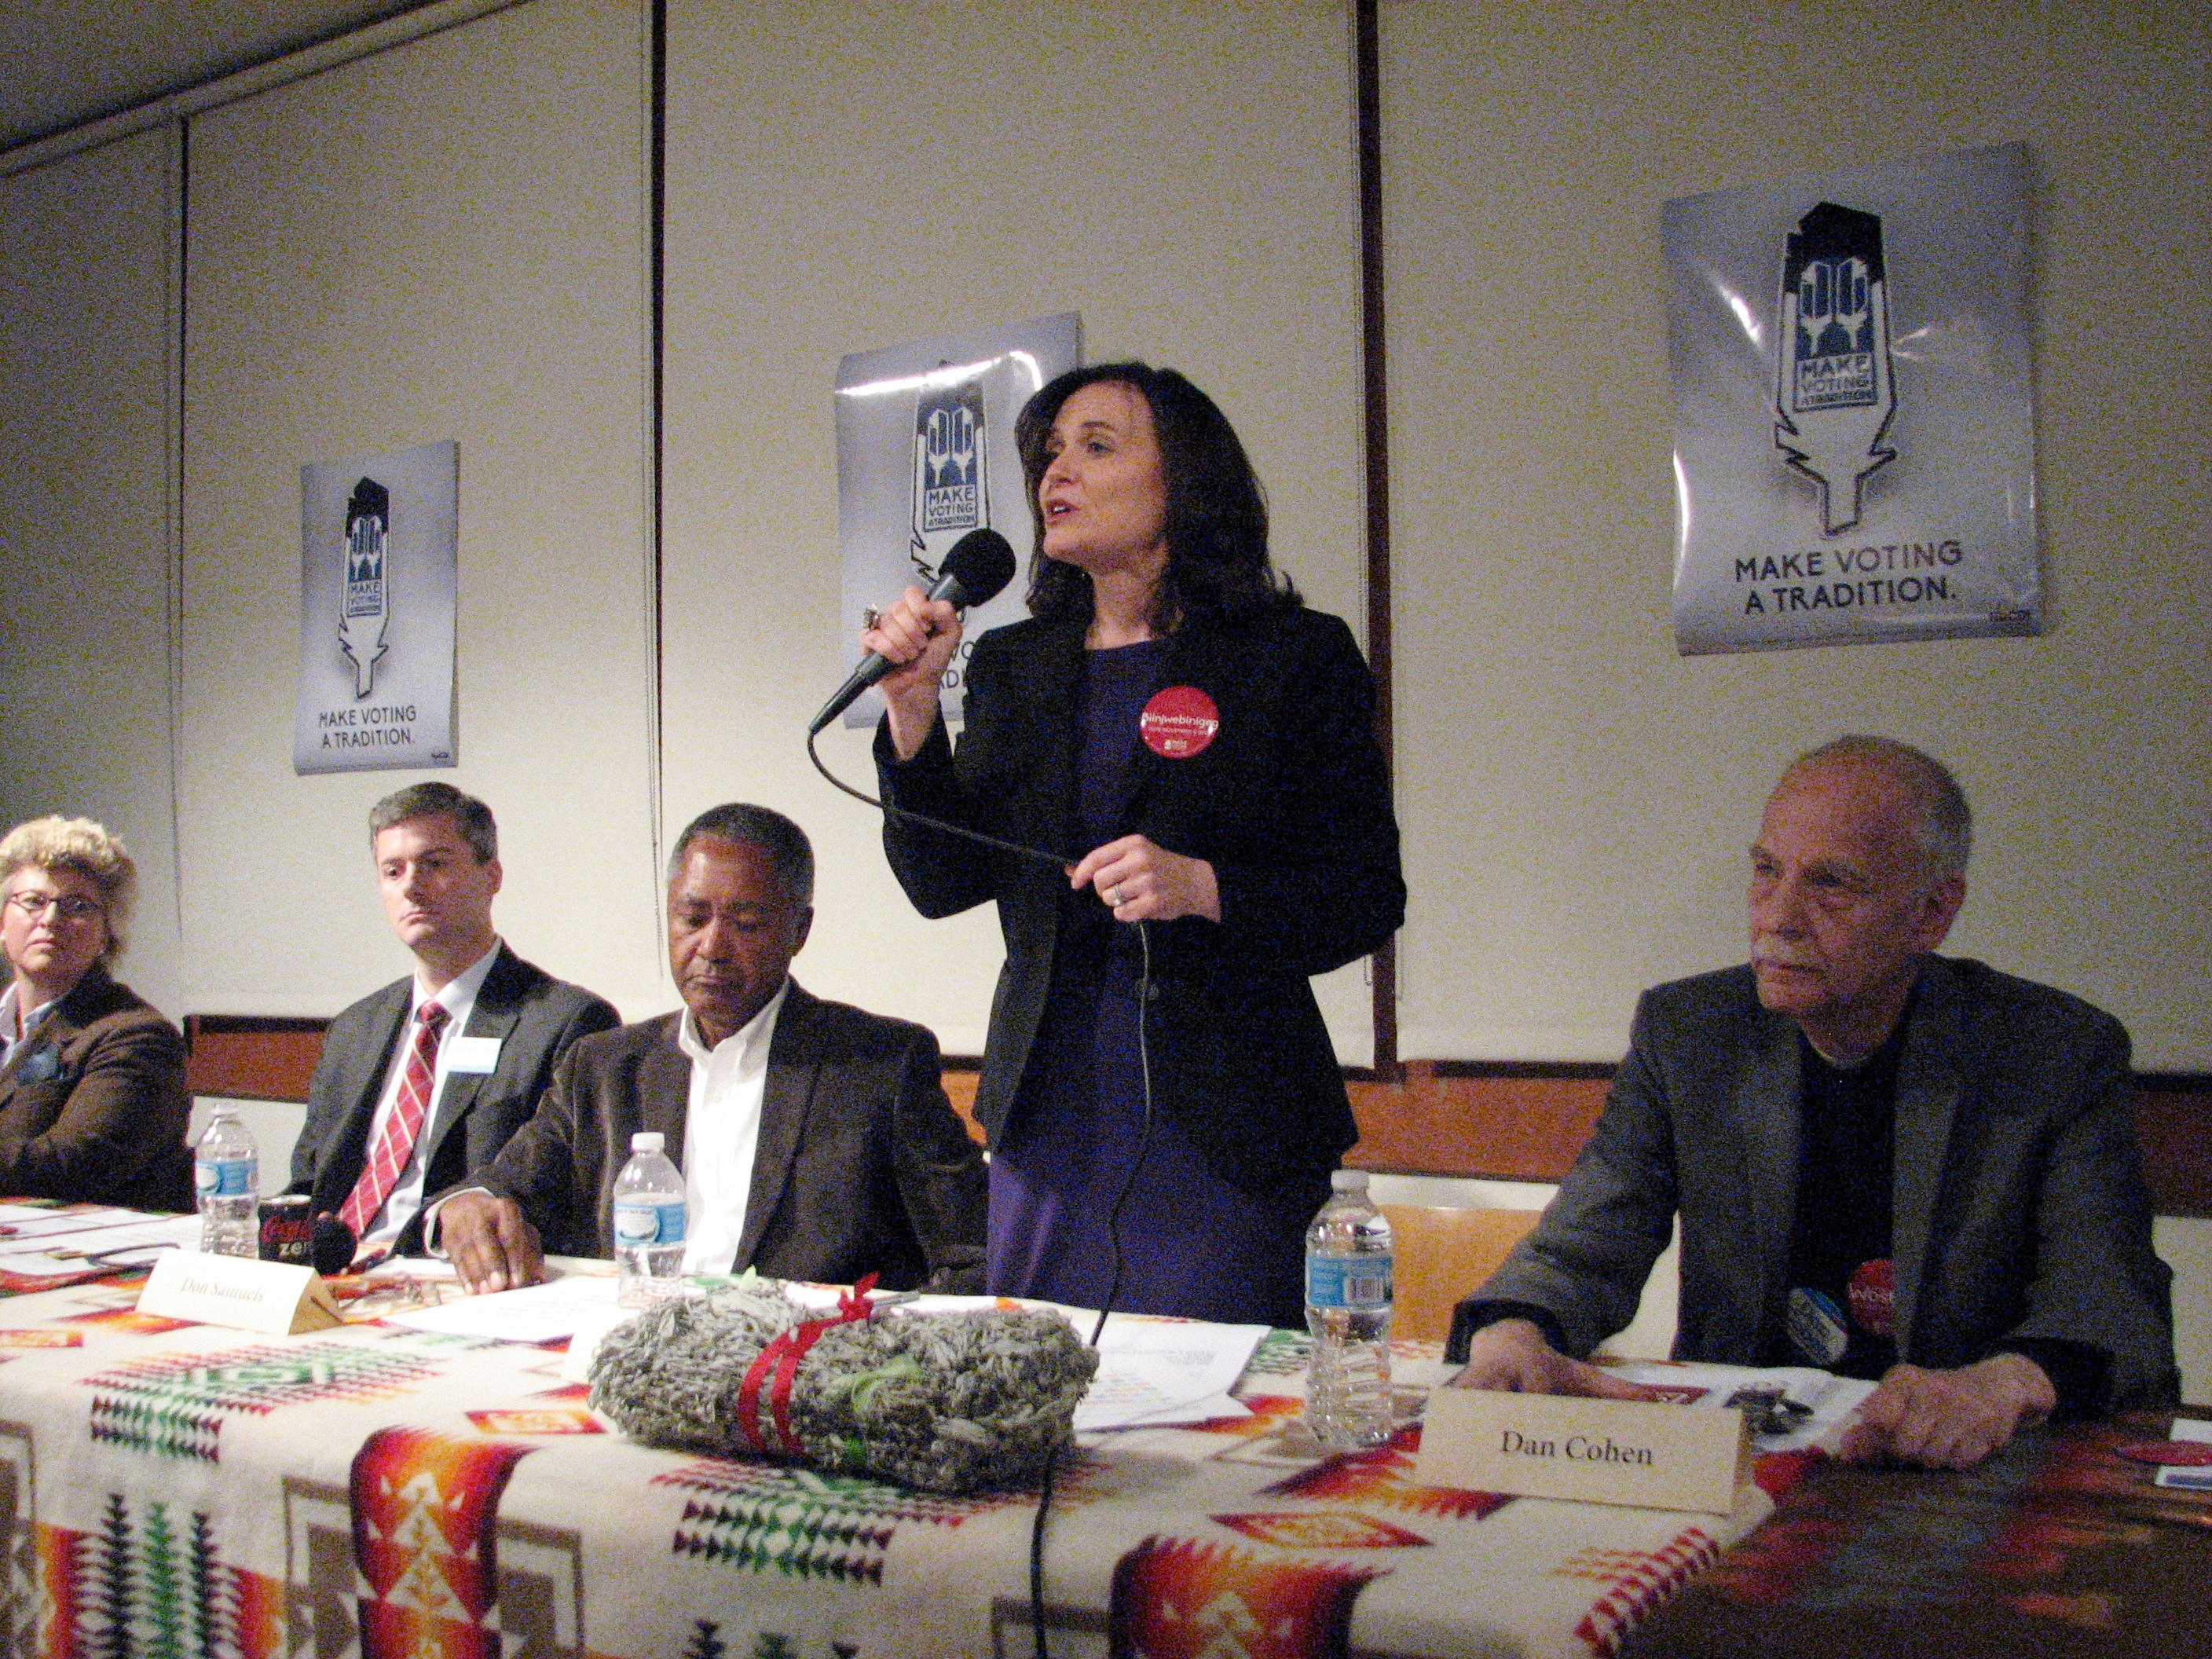 mpls mayoral candidates address native issues.jpg